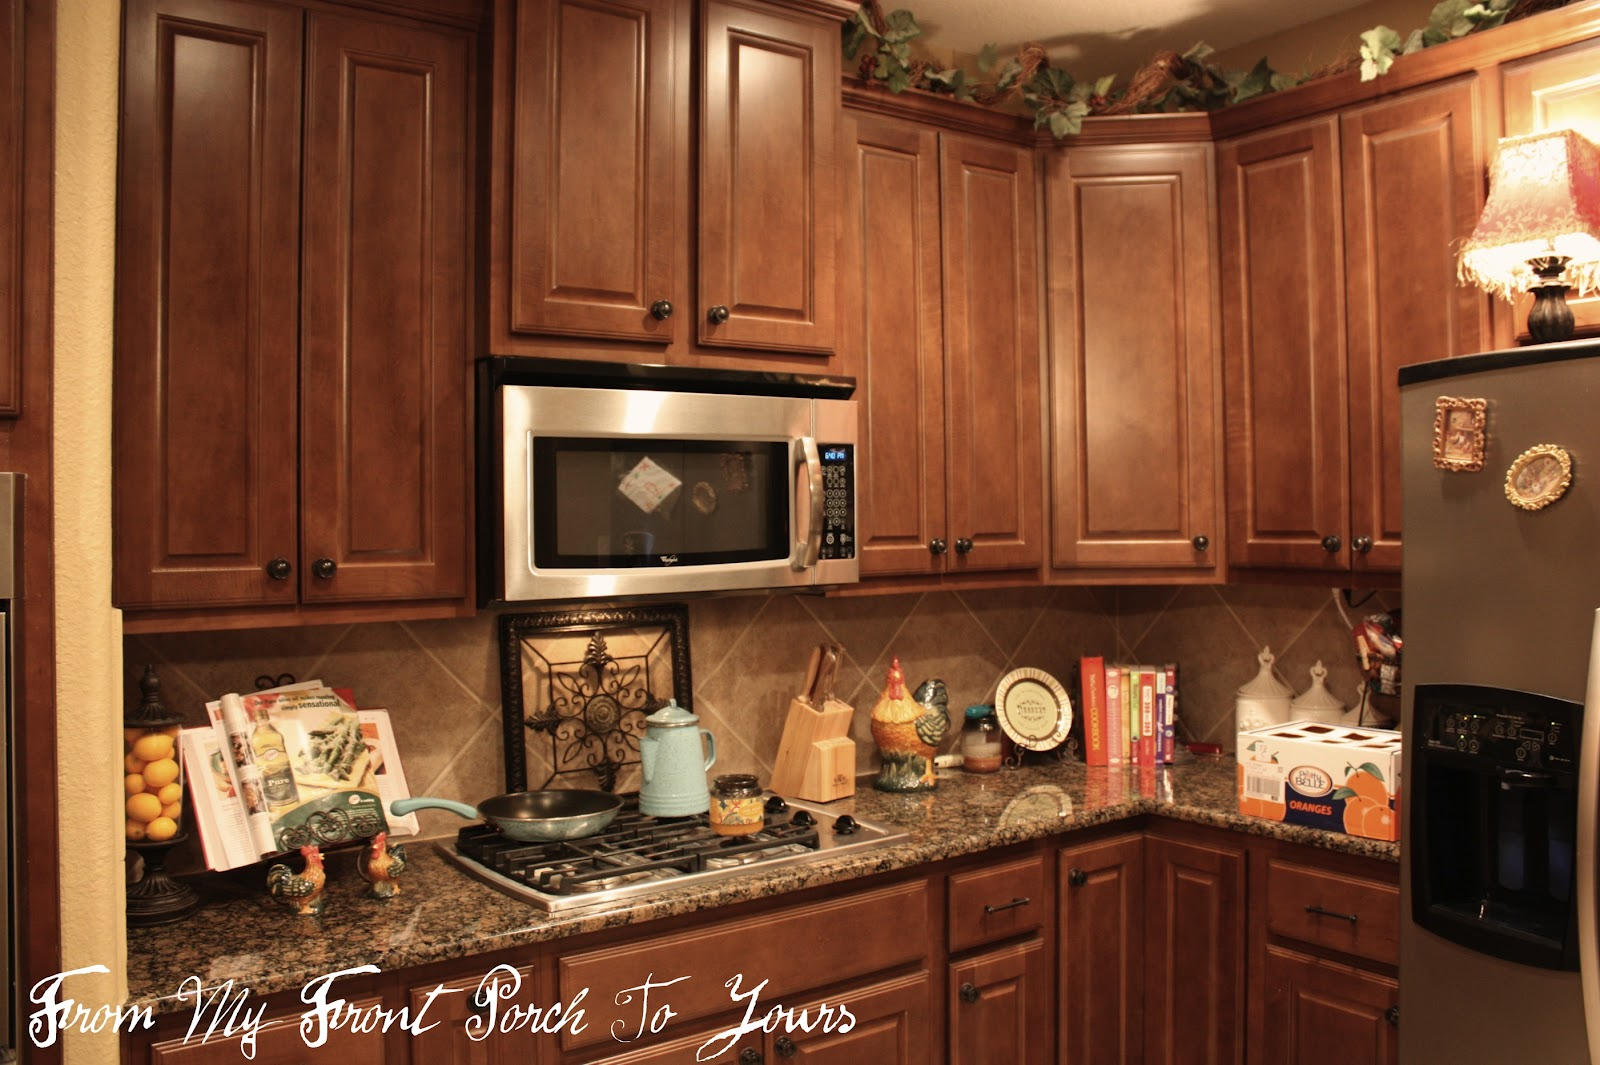 Kitchens with Light Oak Cabinets